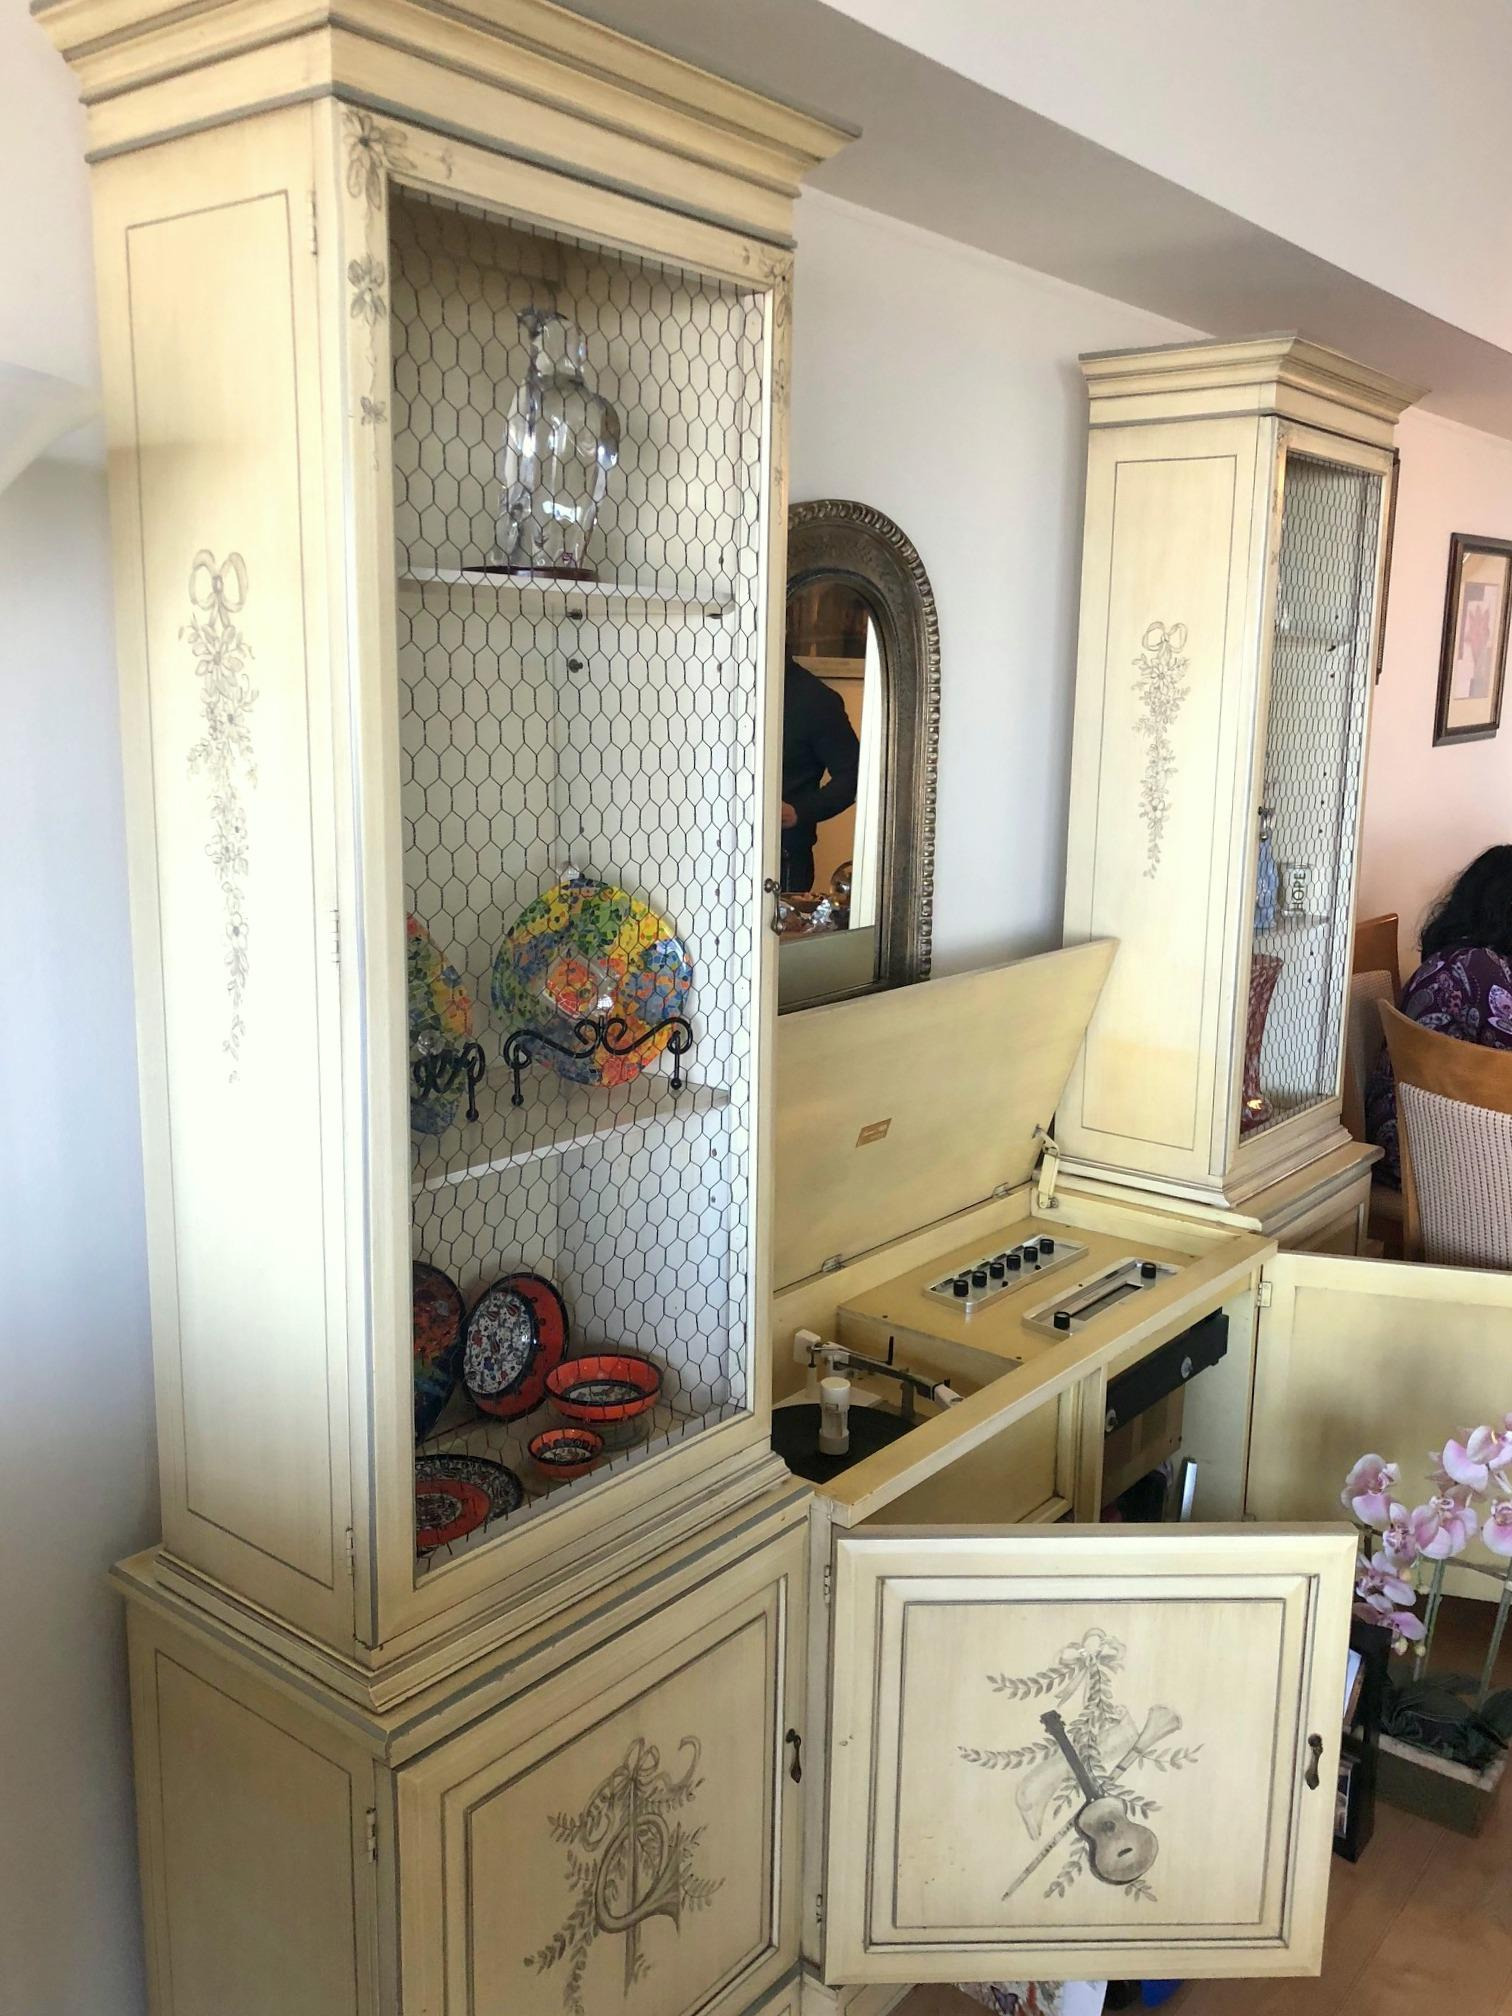 Union Furniture Company Antiques Elegant Antique Union National Fine Furniture Credenza with Built In